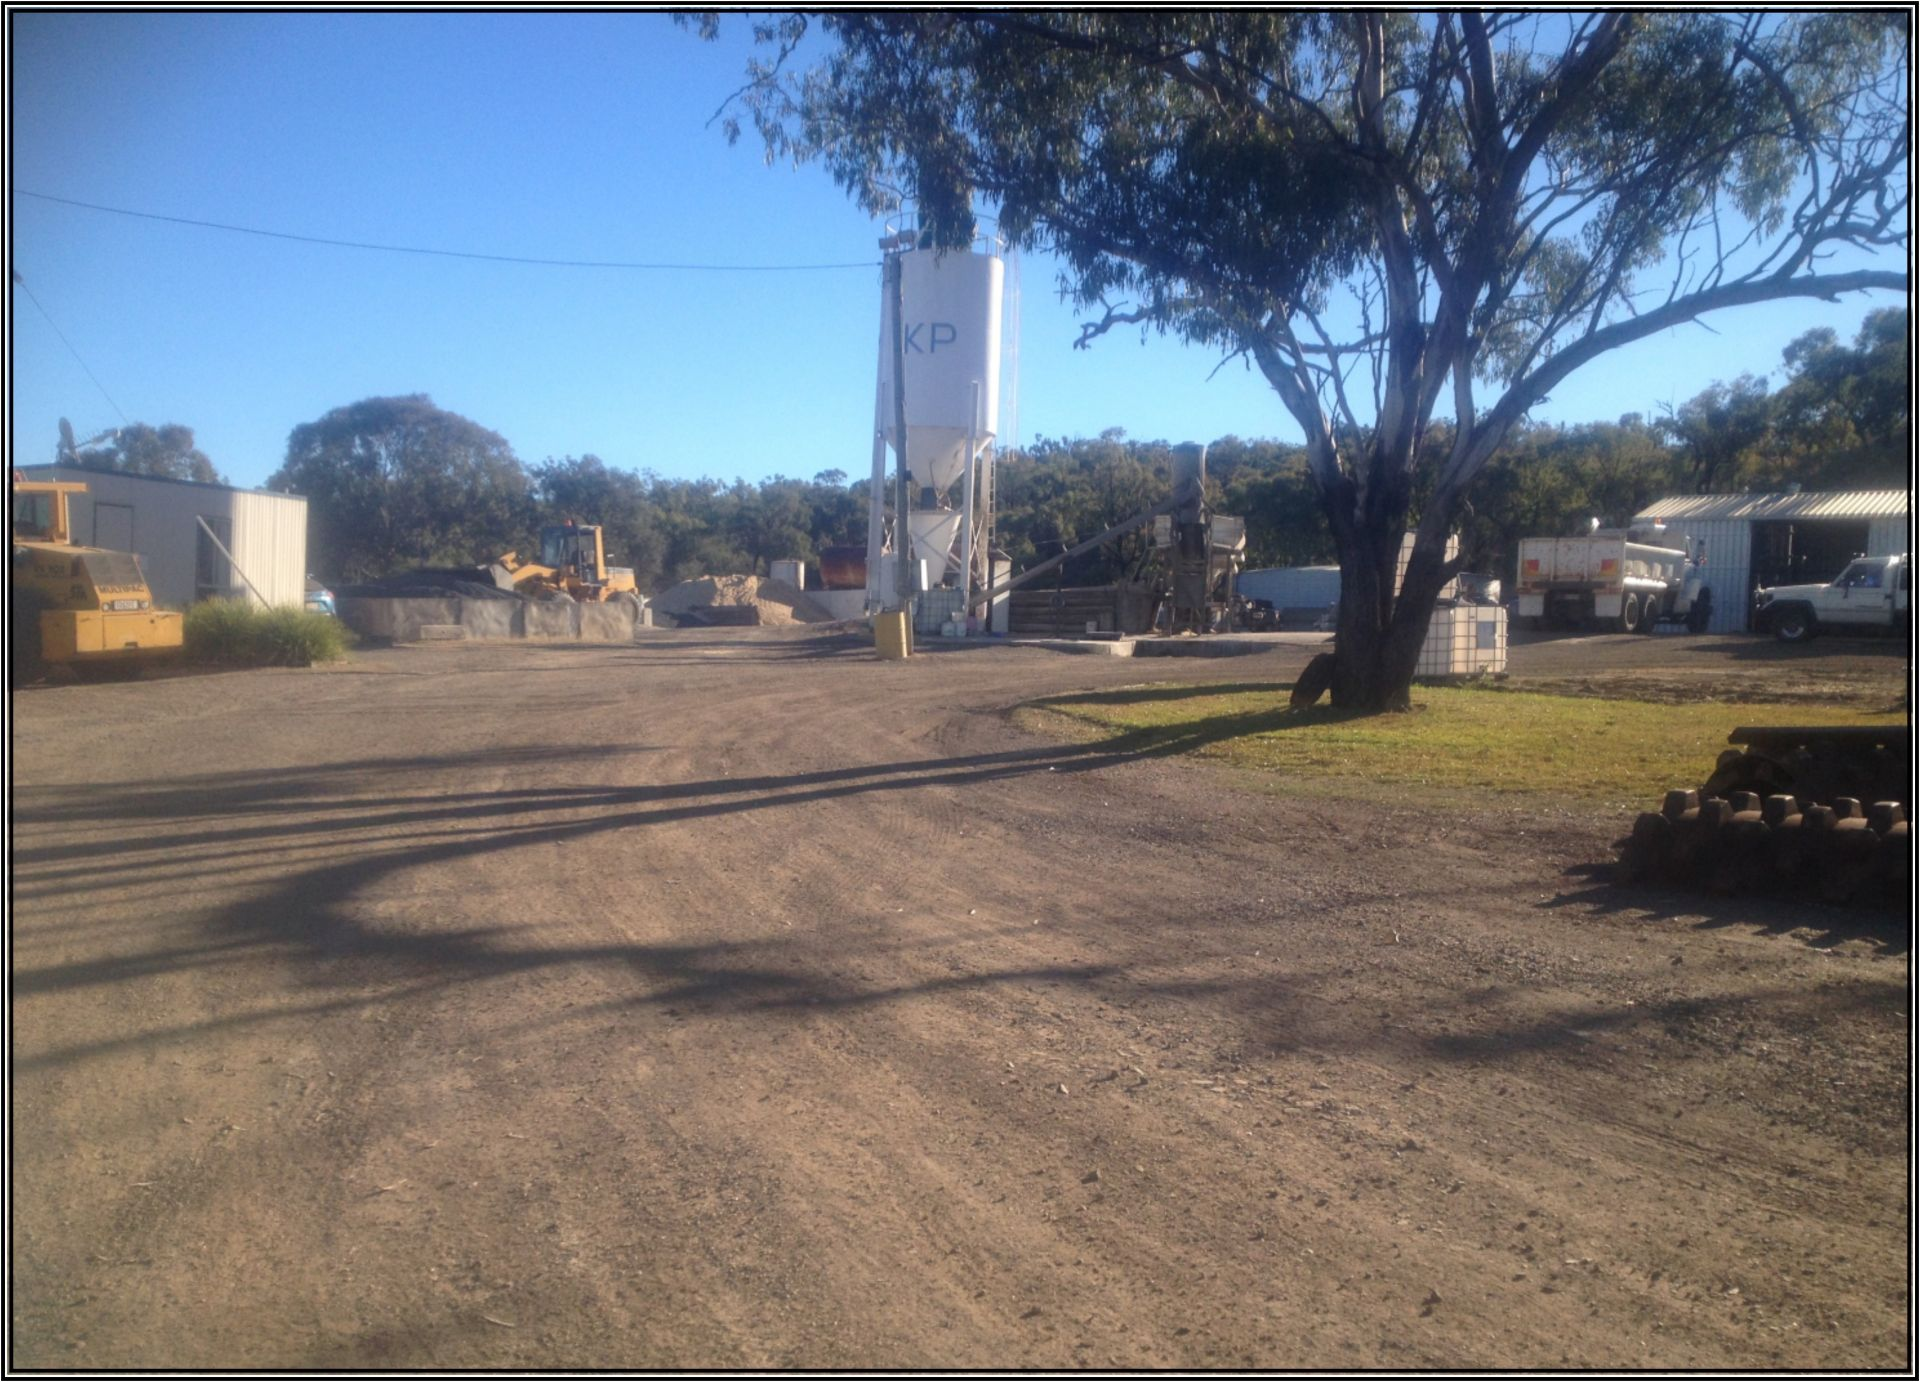 KP CONCRETE SELLING BUSINESS WITH FREEHOLD COMMERCIAL PROPERTY